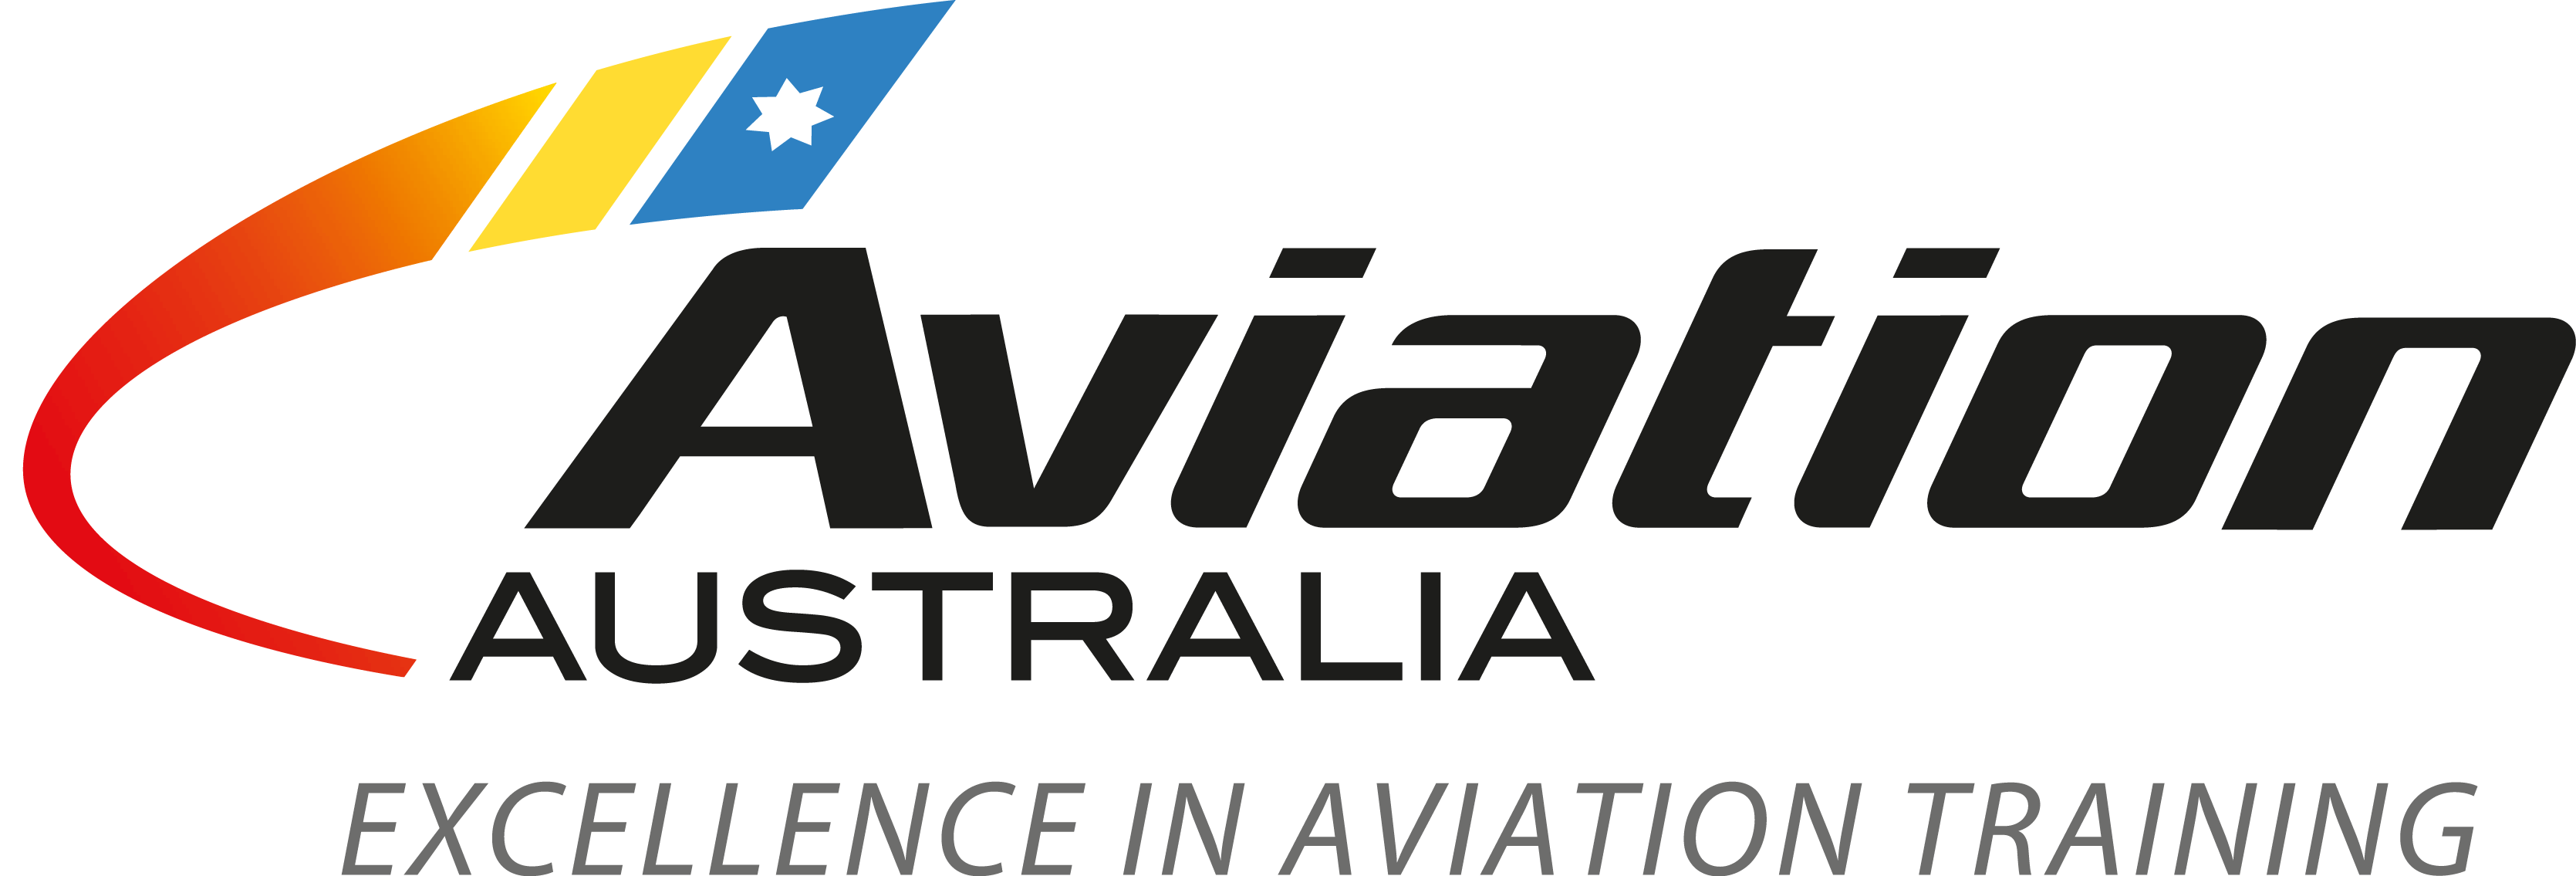 Aviation_Australia_logo_RGB-tagline